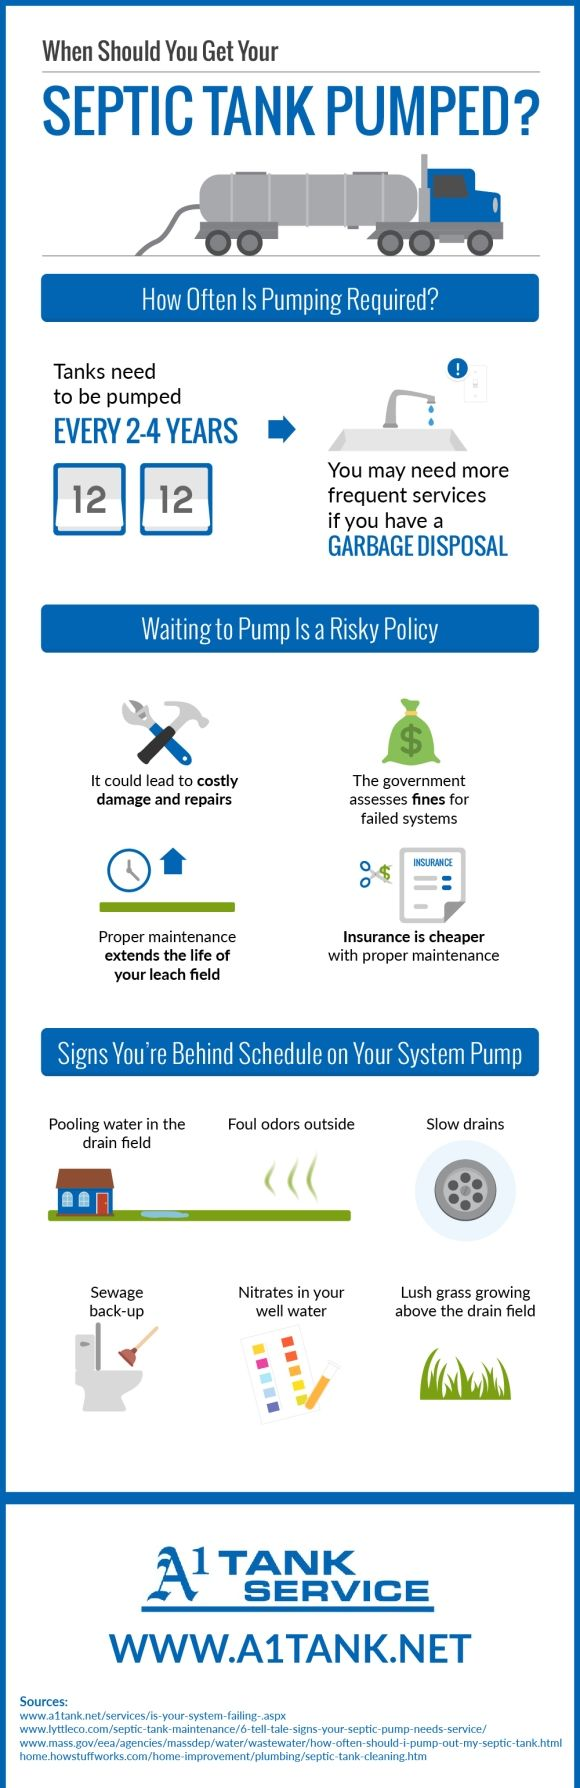 You might be behind schedule on your septic tank pump if you have ...